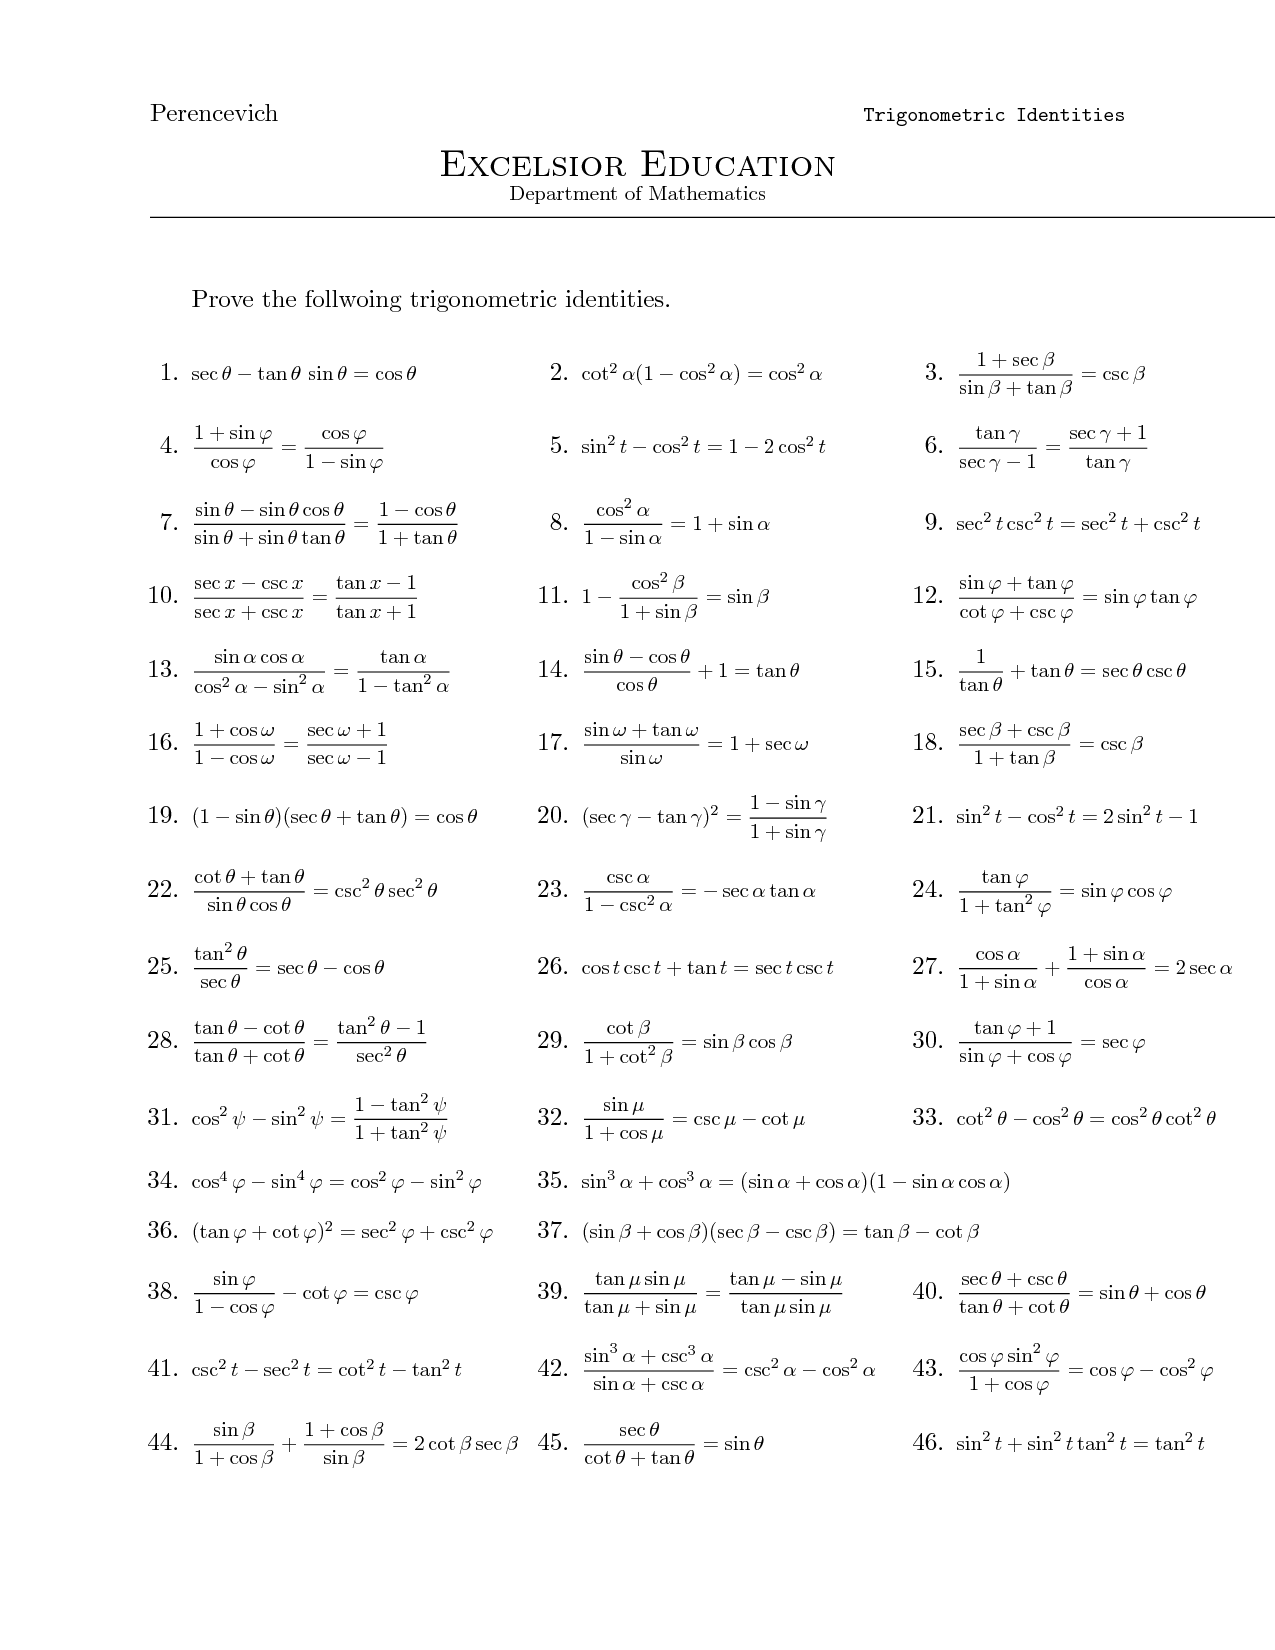 worksheet Basic Trigonometry Worksheets trig identities cut ups pre calculus pinterest trigonometry identity problems